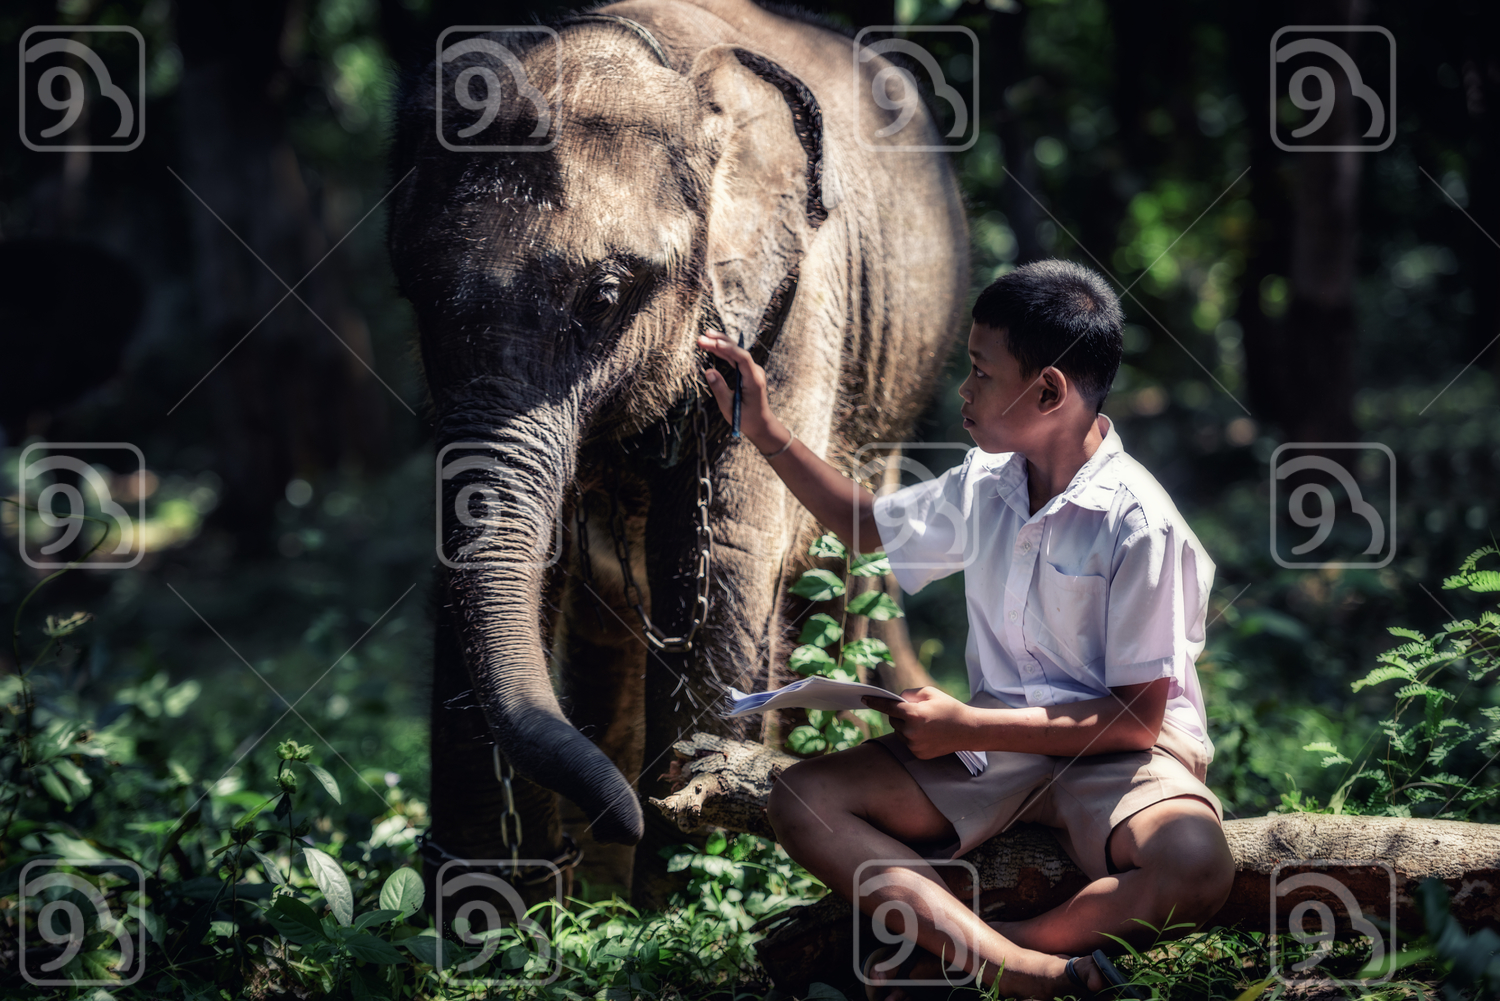 Thai Student in uniform with young elephant